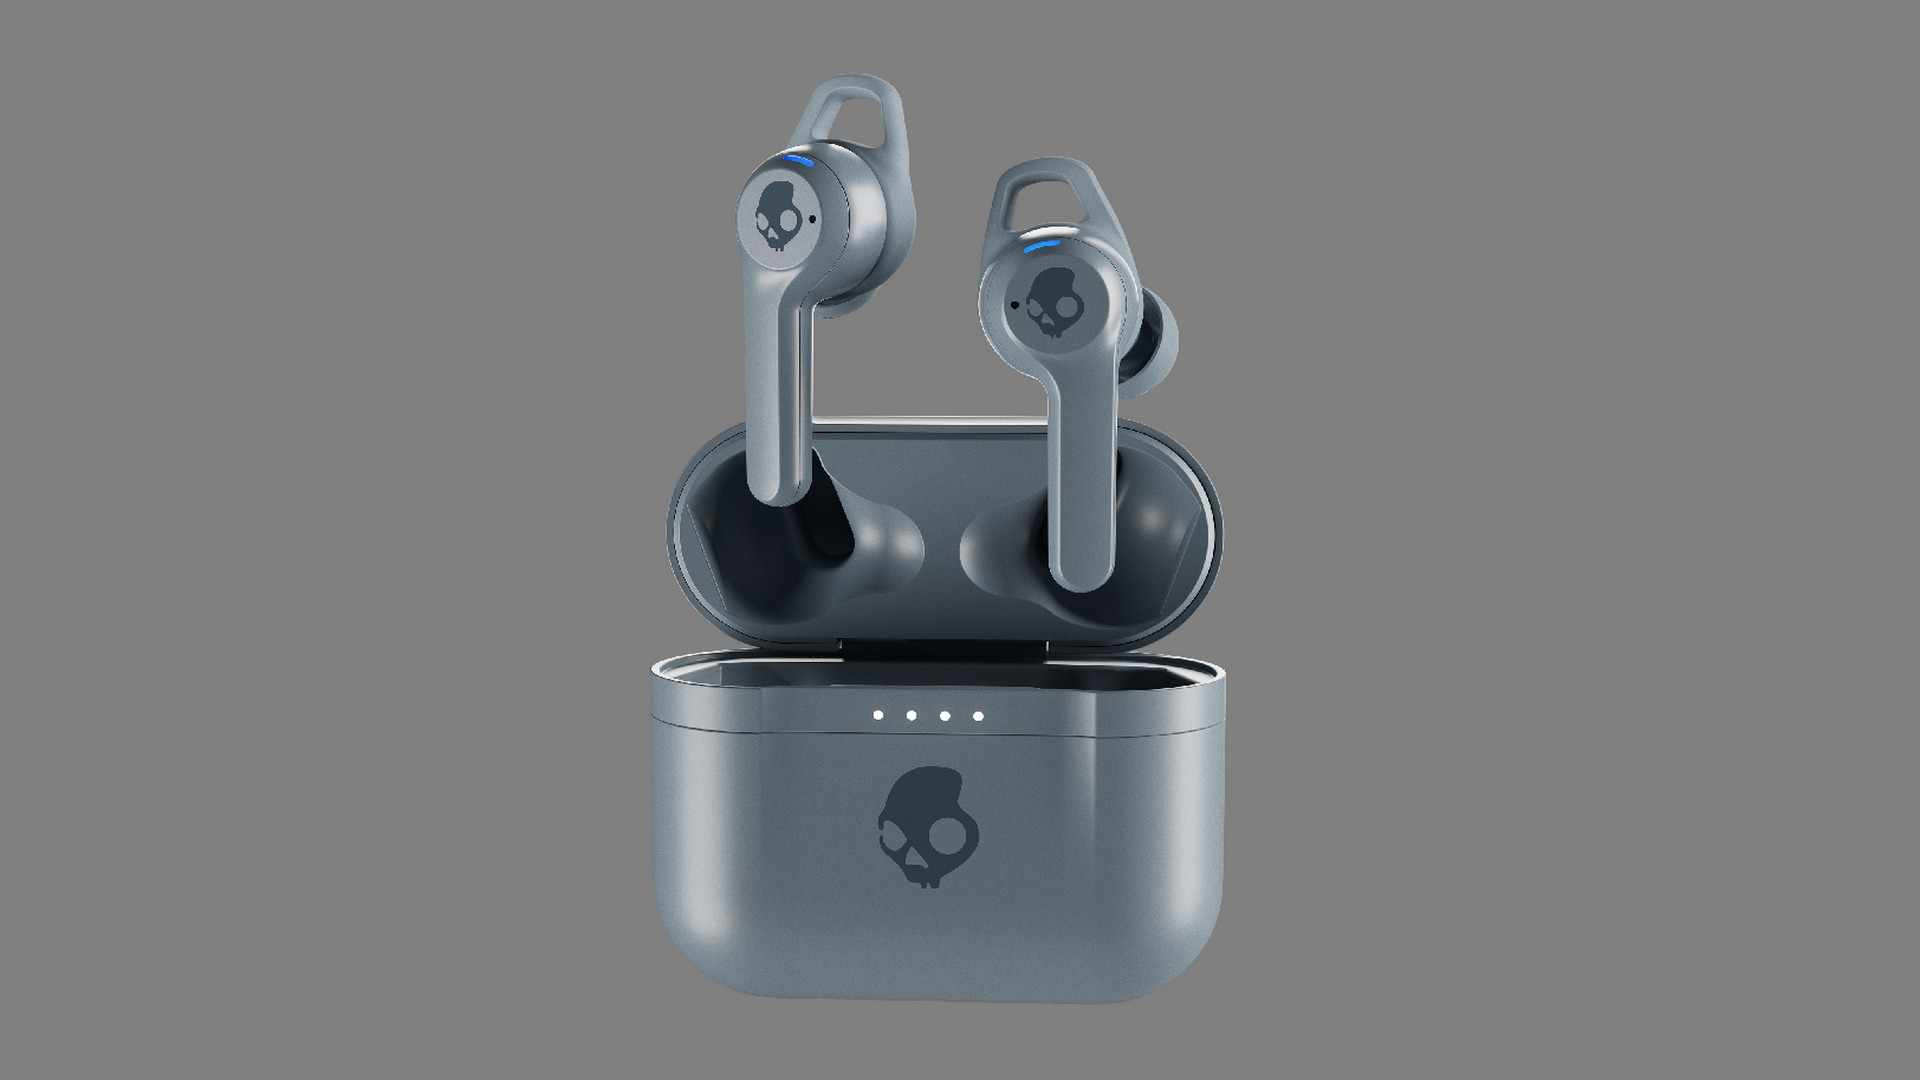 Skullcandy Expands Fan Favorite Product Lines With Premium Sound, Active Noise Cancelling Tech: INDY ANC & HESH ANC